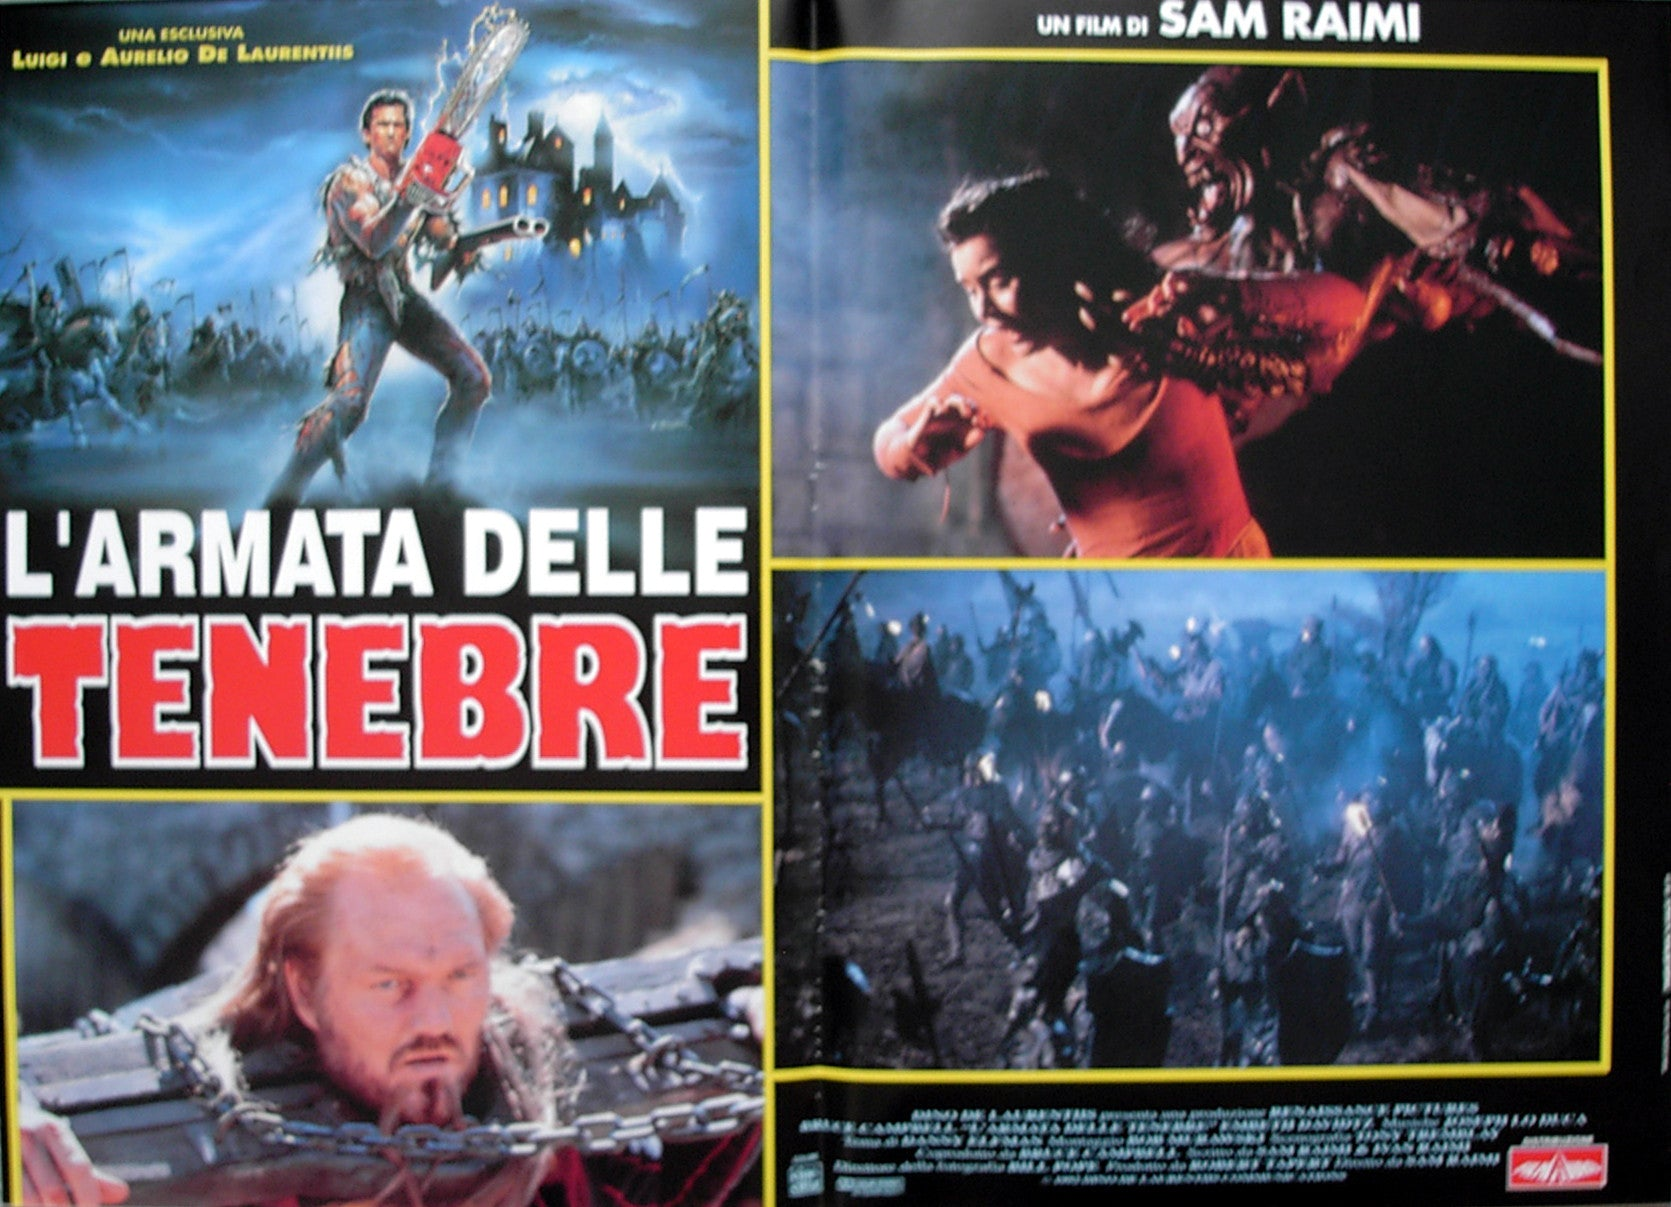 ARMY OF DARKNESS - Italian photobusta poster v2